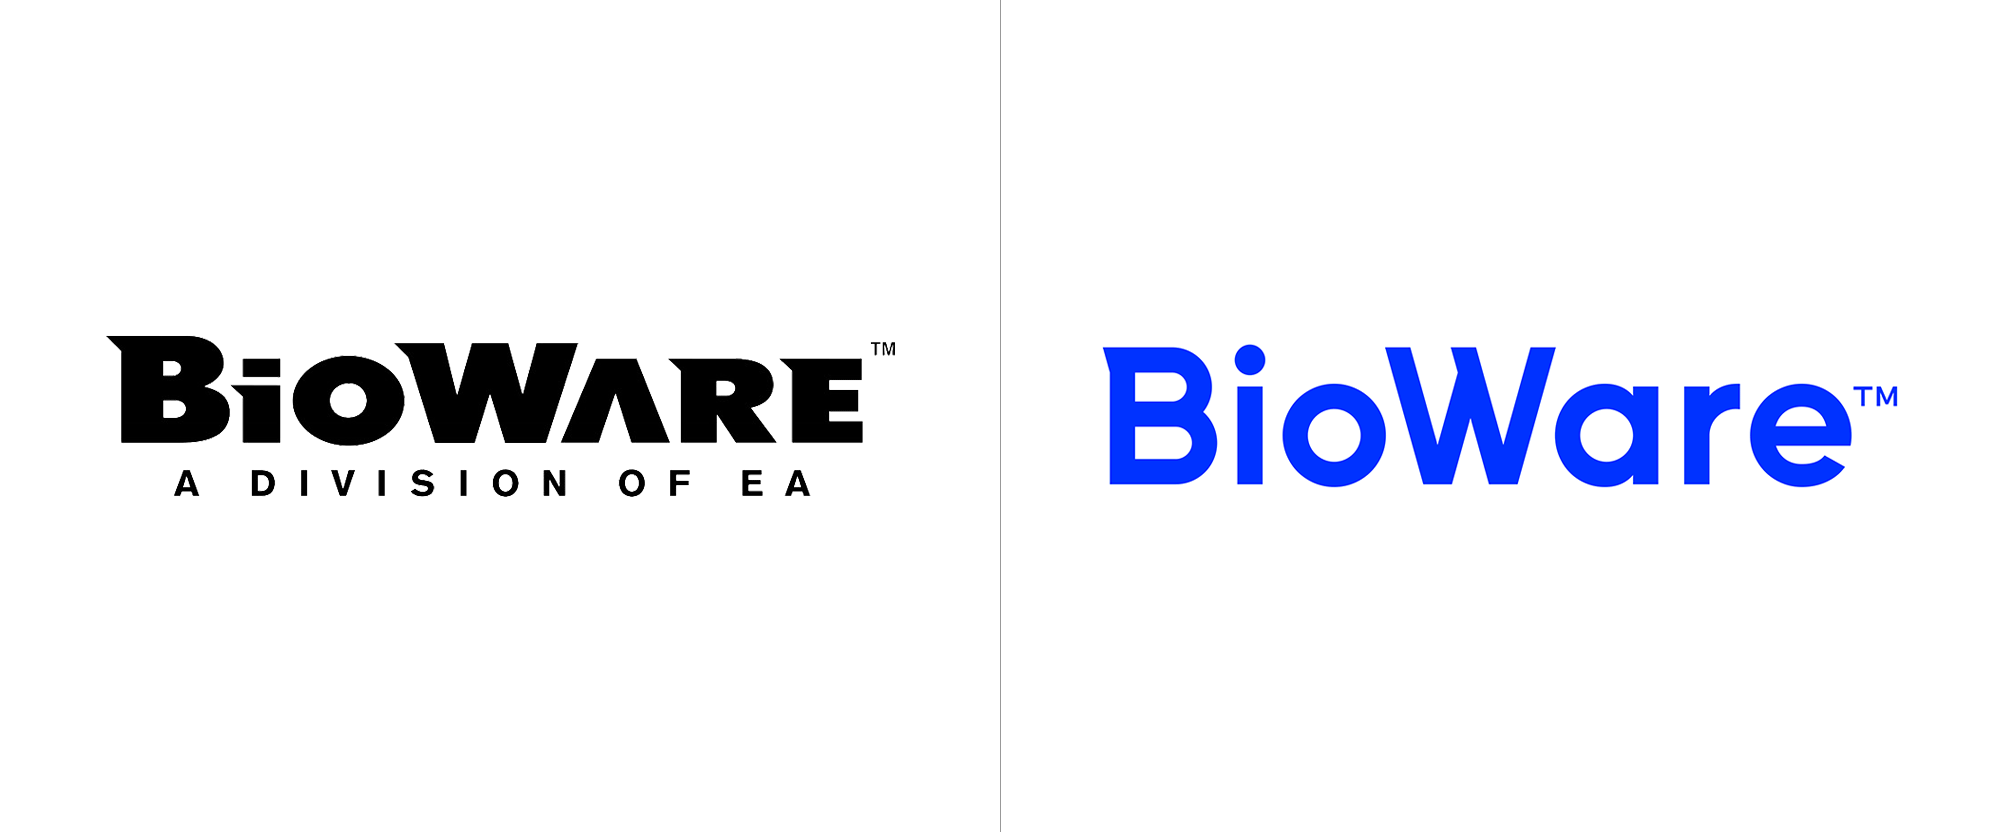 Follow-up: New Identity for BioWare by Tolleson and In-house